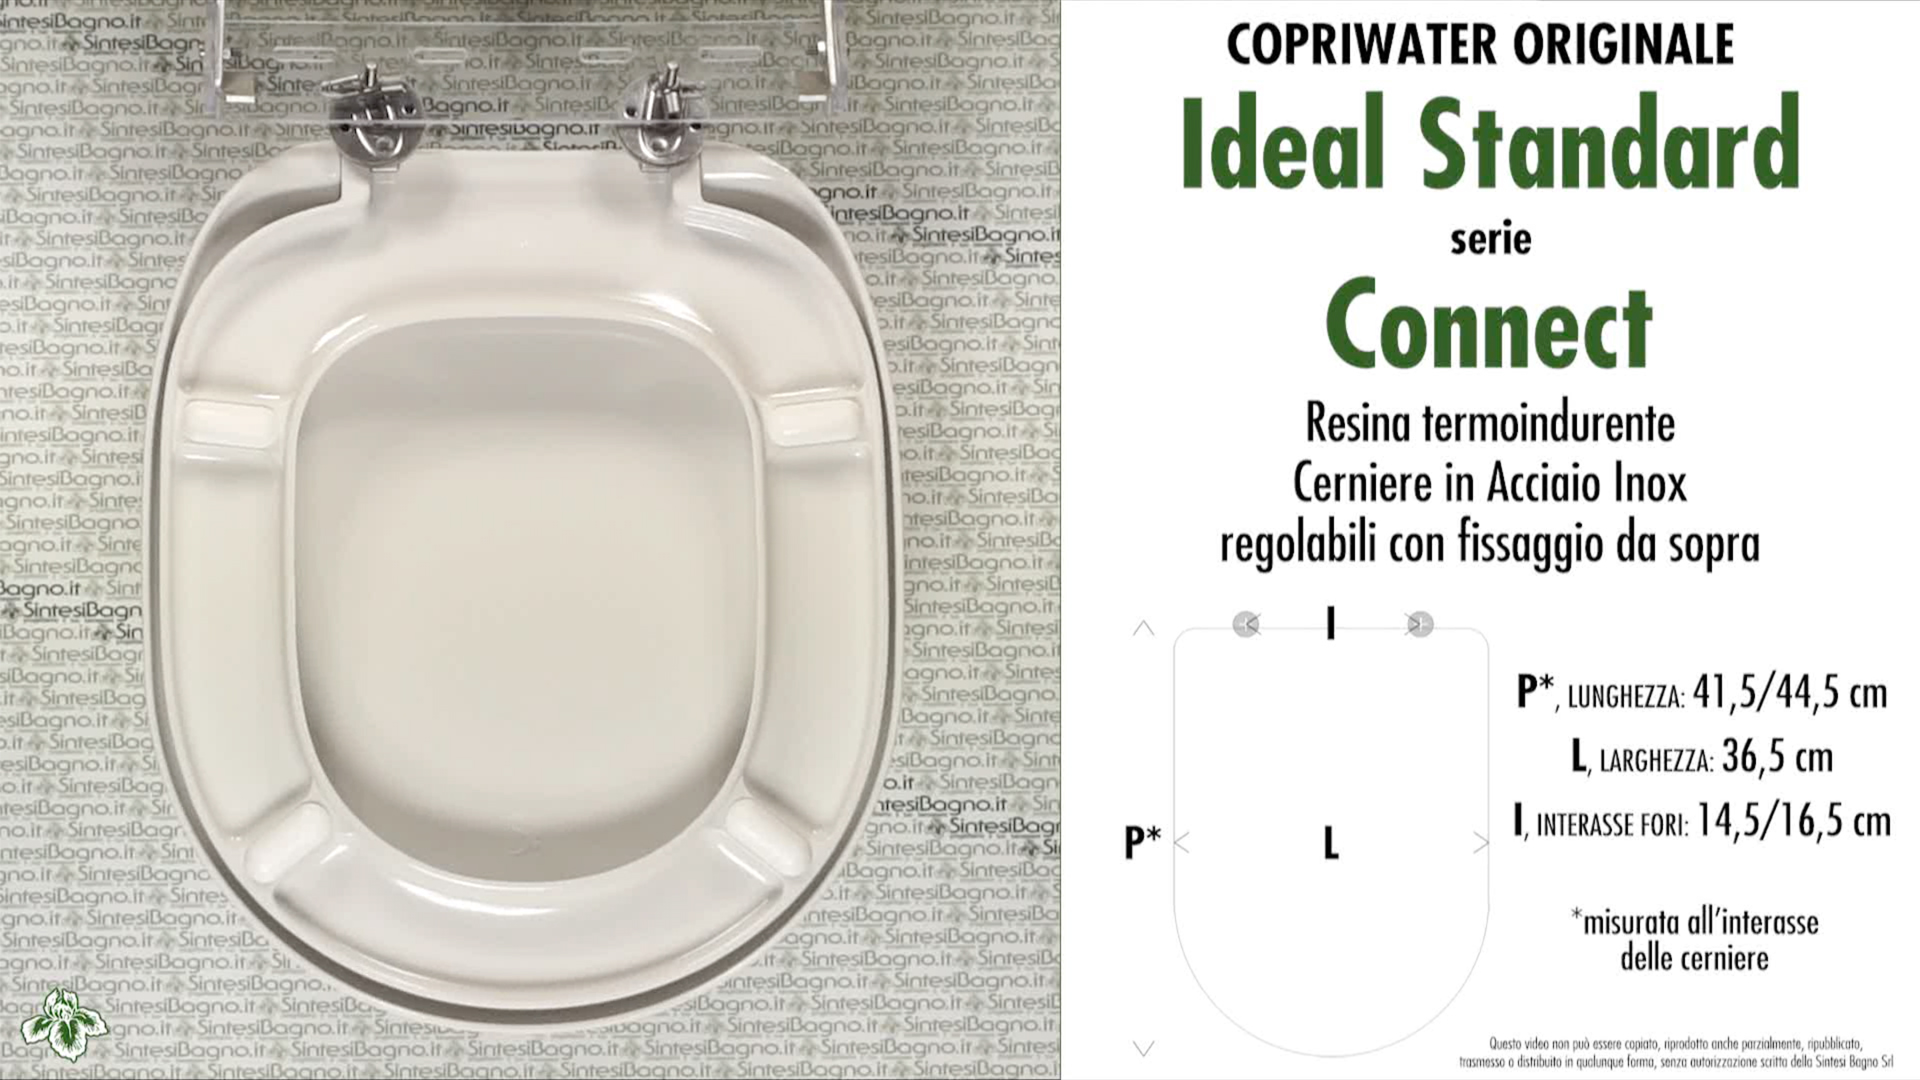 Copriwater per wc connect ideal standard ricambio for Misure copriwater ideal standard